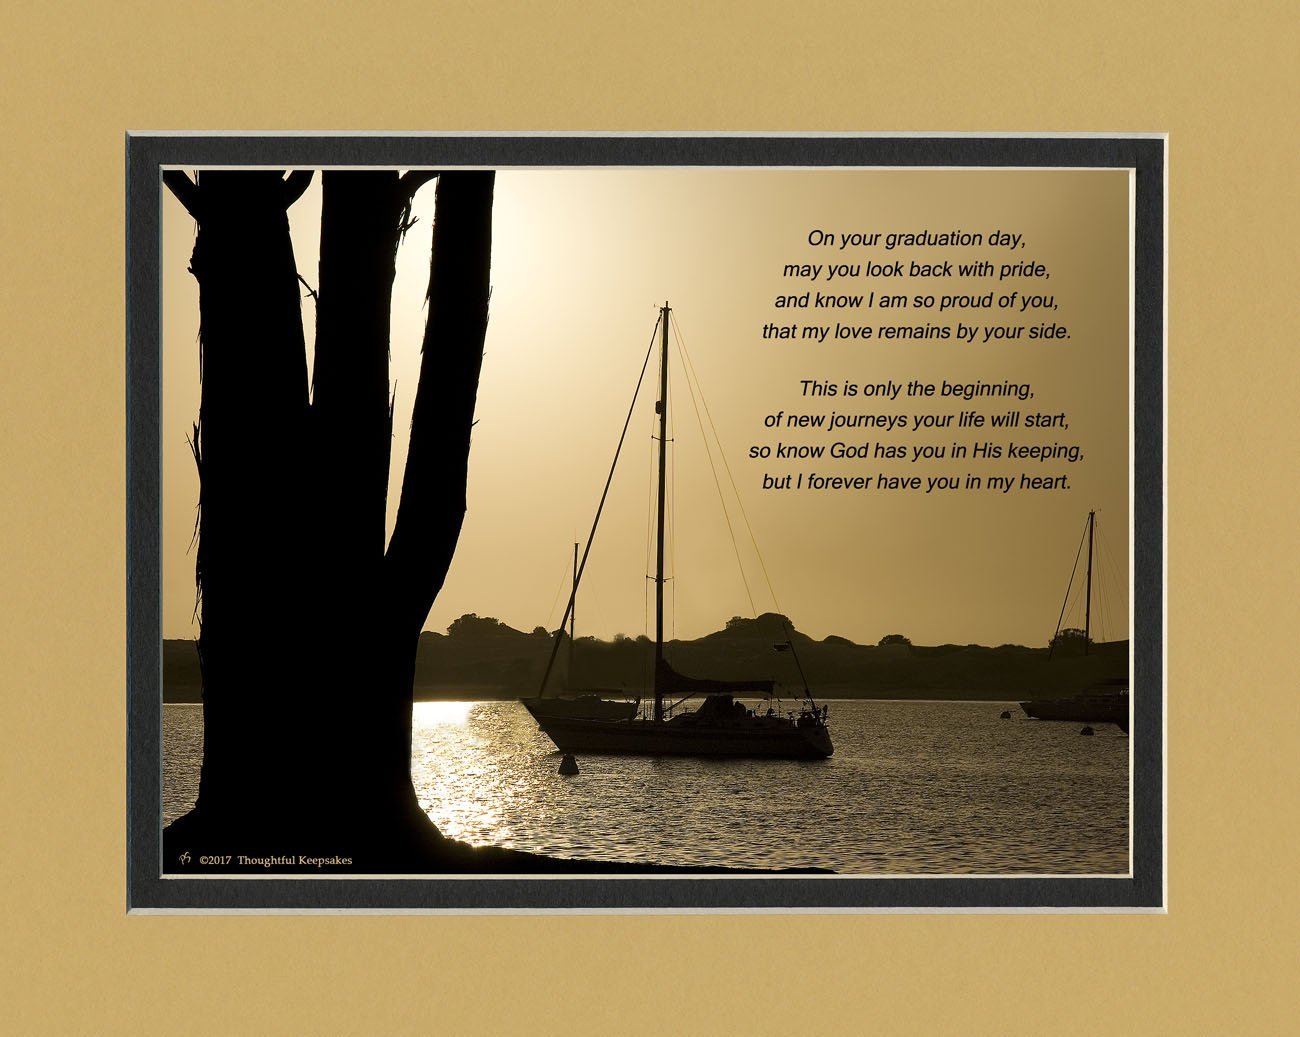 Graduation Gift ''On your graduation day, This is only the beginning, of new journeys your life will start'' Poem. Boats Photo, 8x10 Double Matted. A Special Keepsake Gift for Graduate.